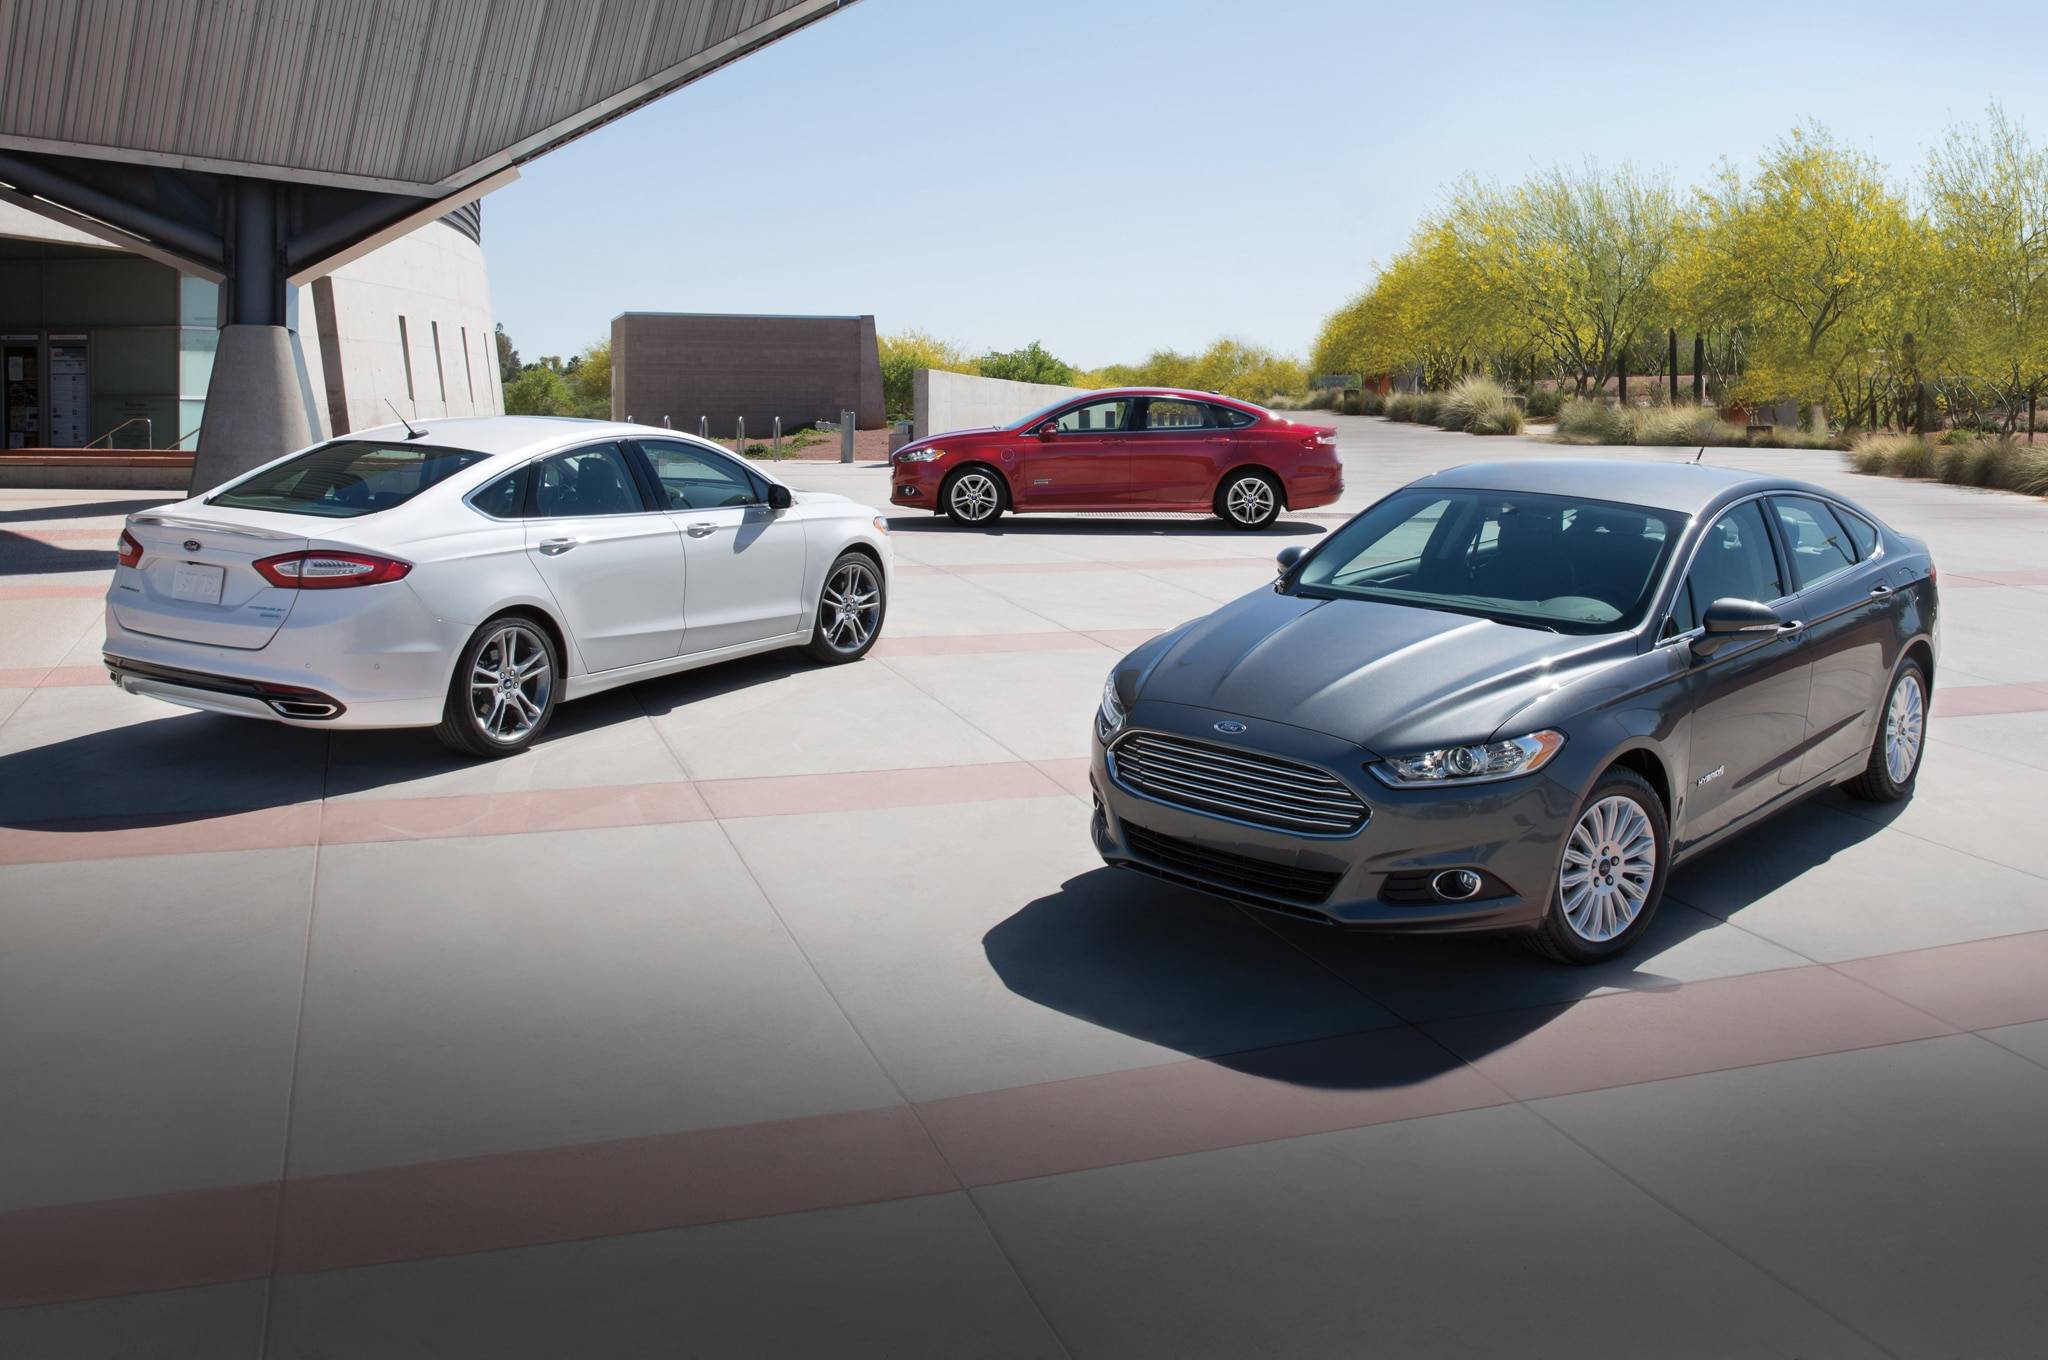 Sync 3 replaces myford touch in future ford vehicles